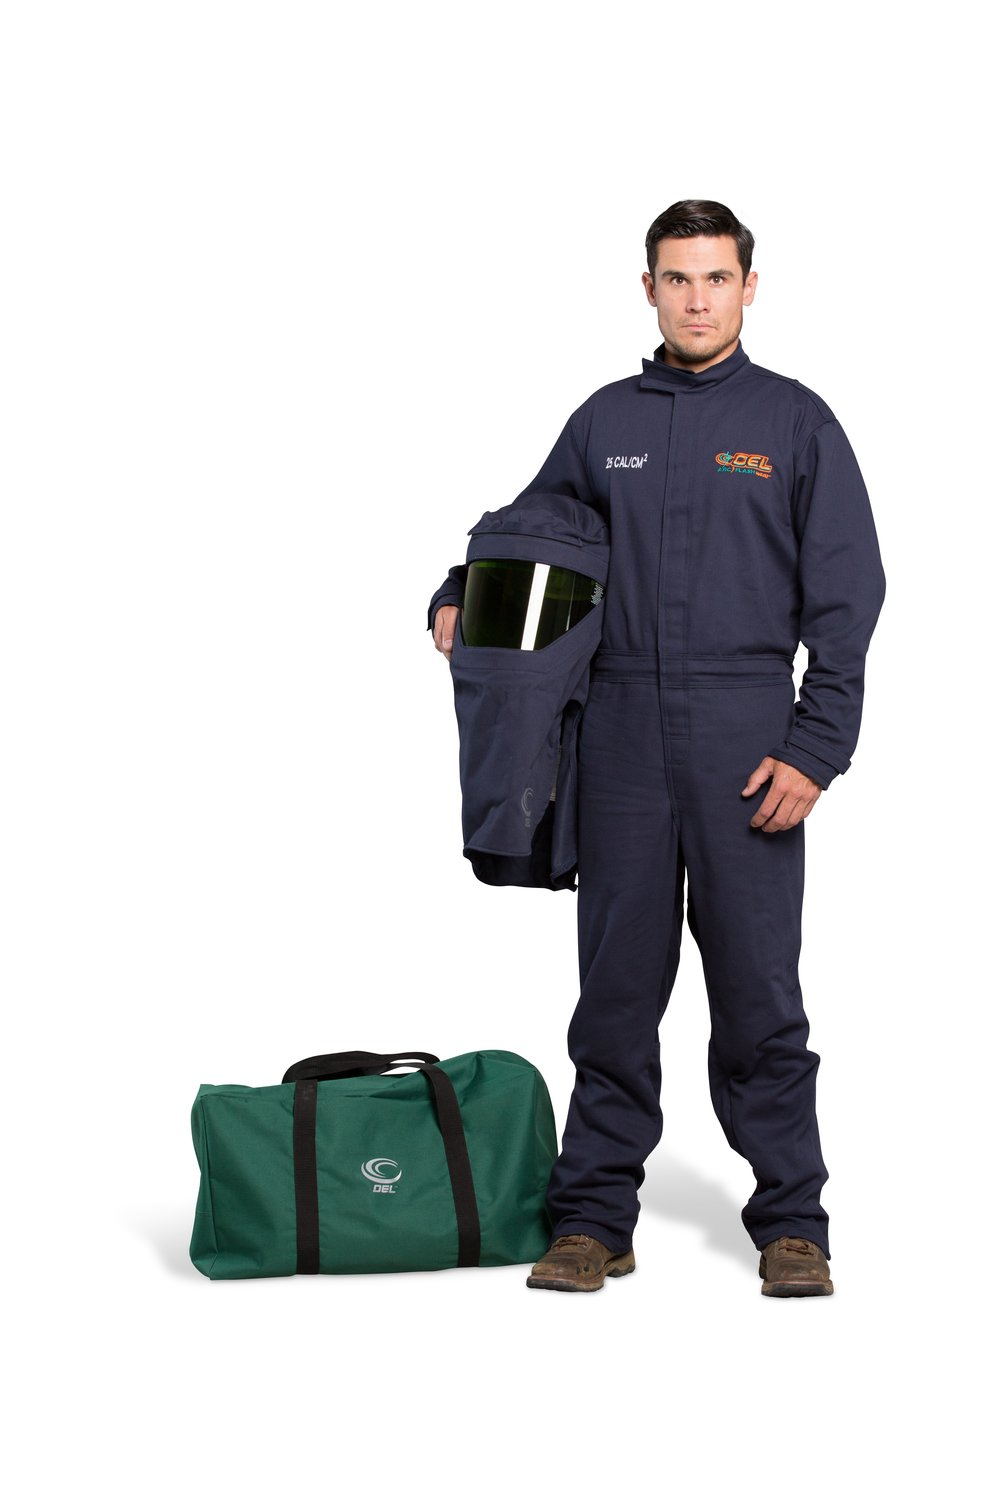 25 Cal Coverall Kit